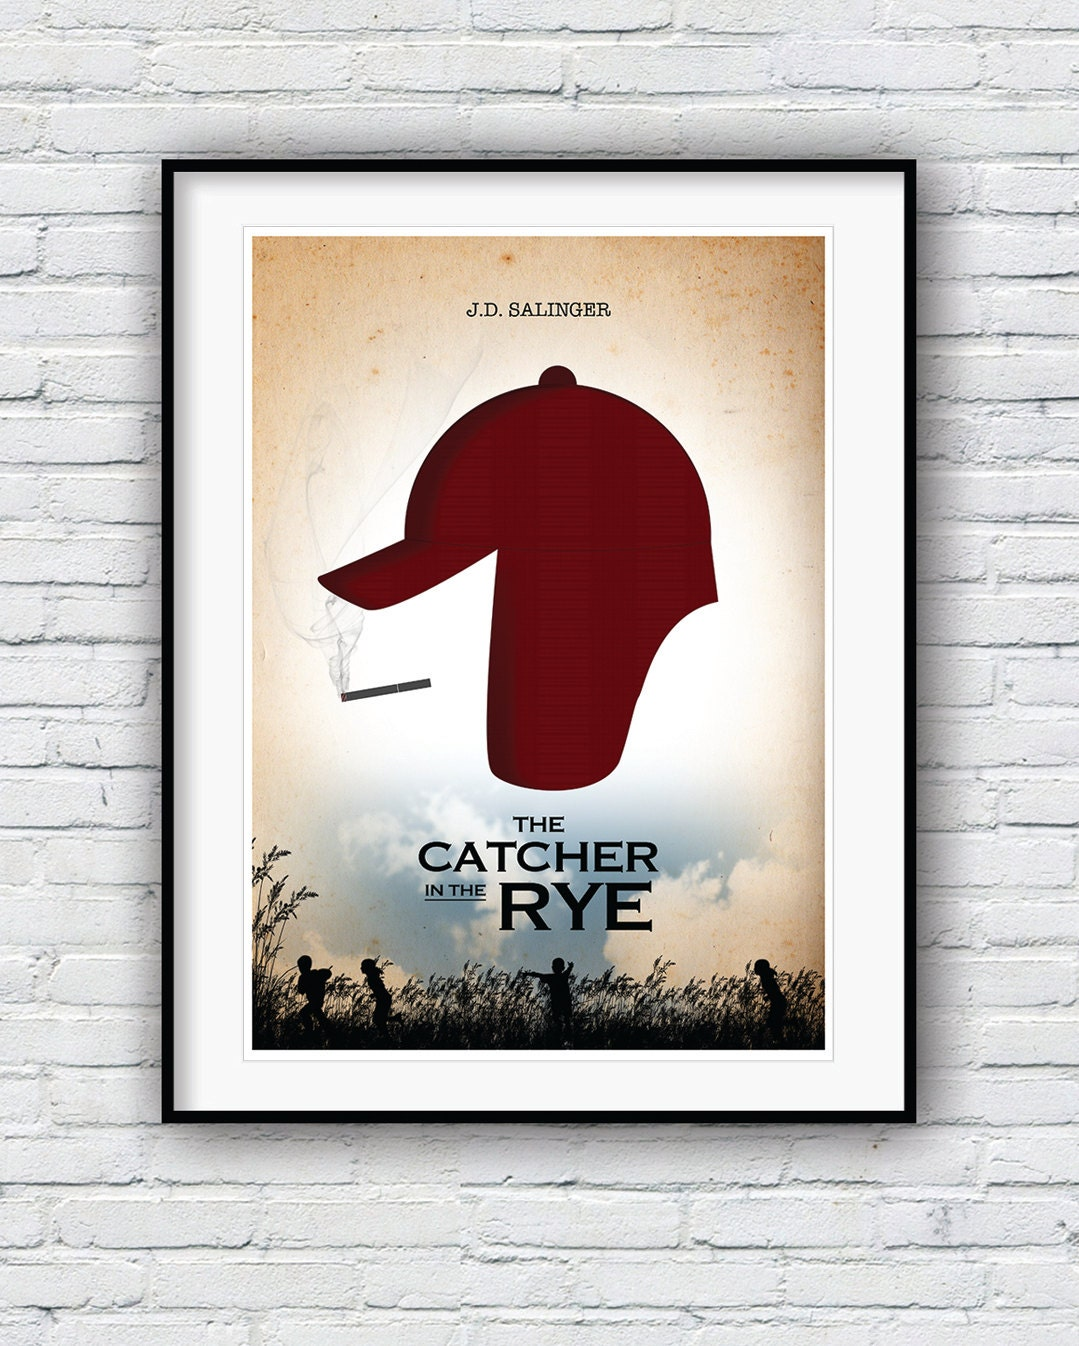 a review of jd salingers the catcher in the rye Jd salinger's catcher in the rye is a coming of age novel, written from the prospective of the protagonist and first person narrator, holden caulfield in the 1950s era.